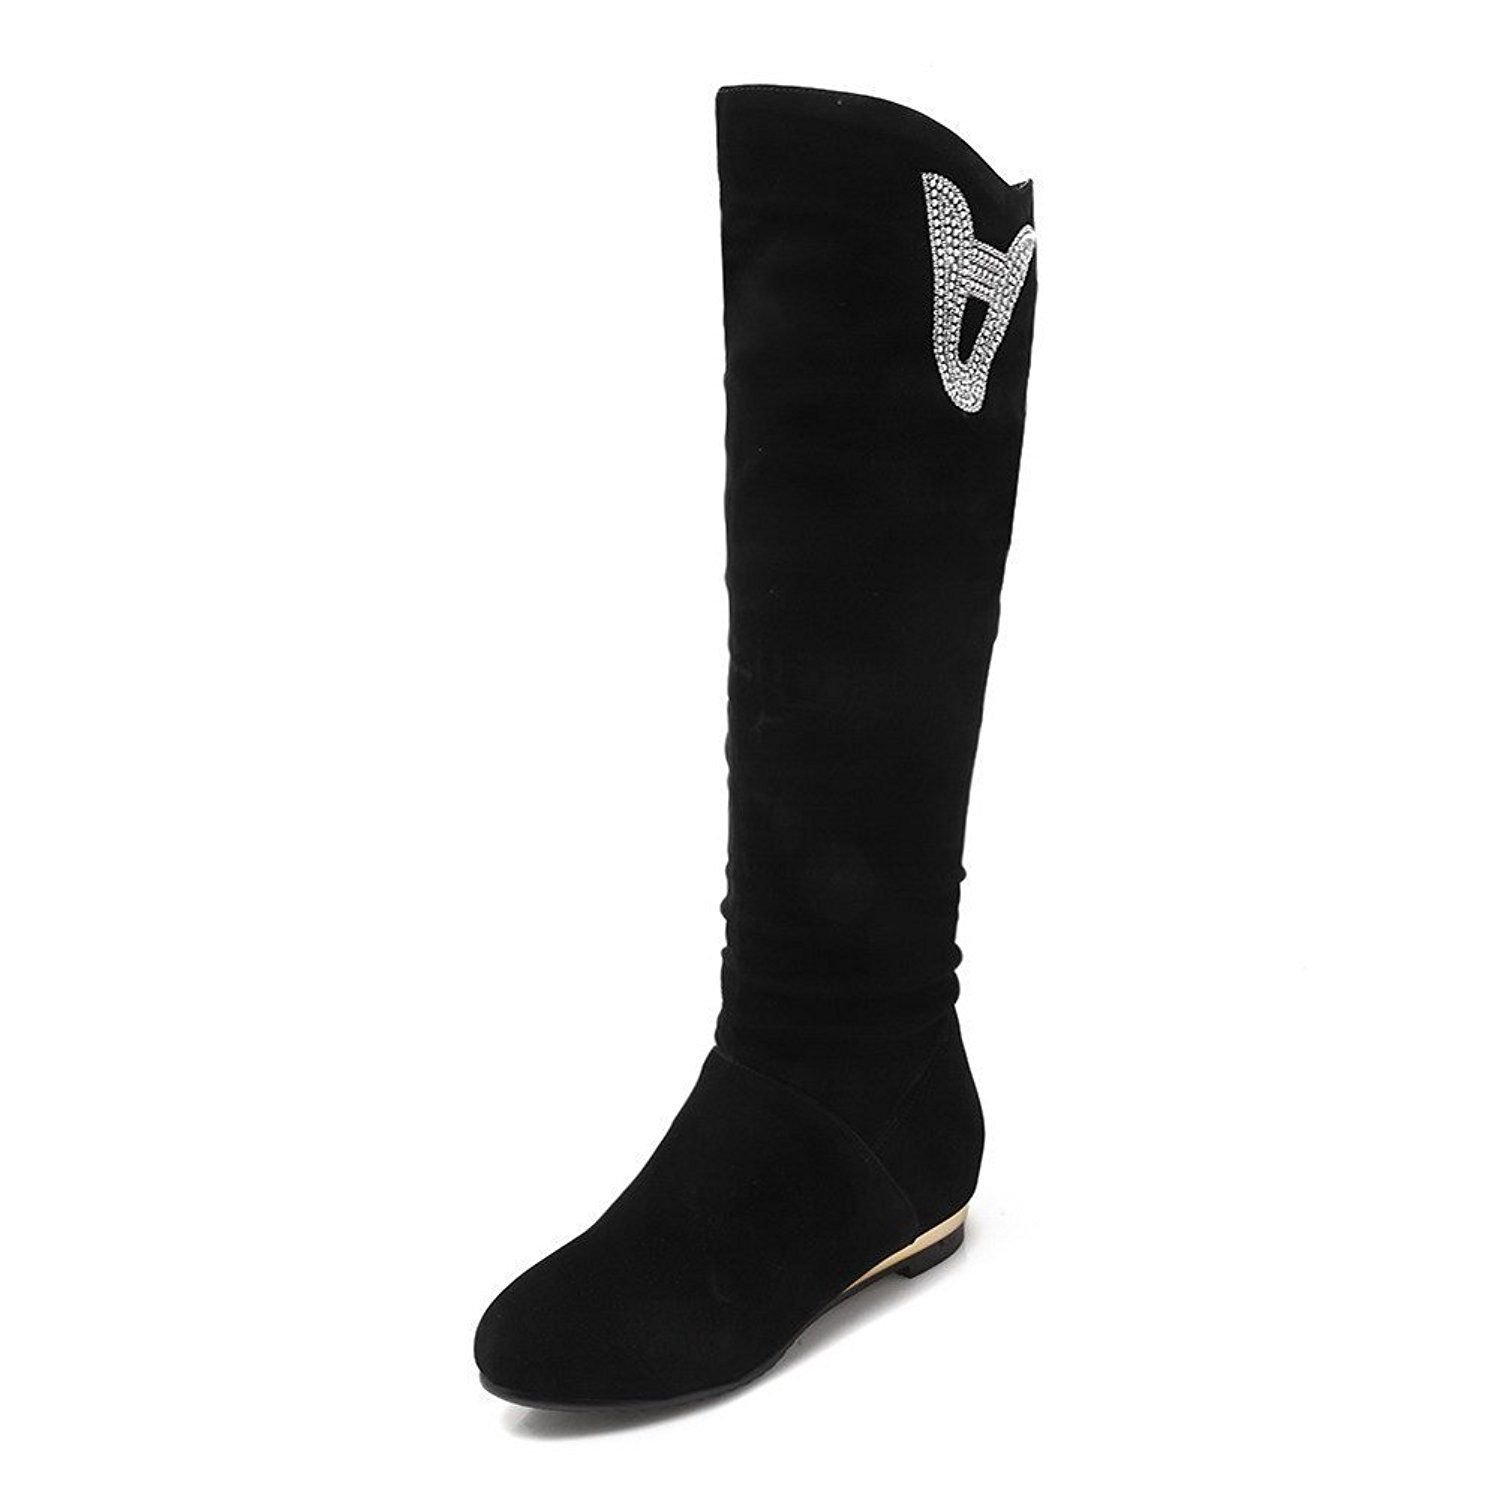 VogueZone009 Women's Low-heels Round Closed toe Frosted Knee-high Boots >>> Be sure to check out this awesome product.